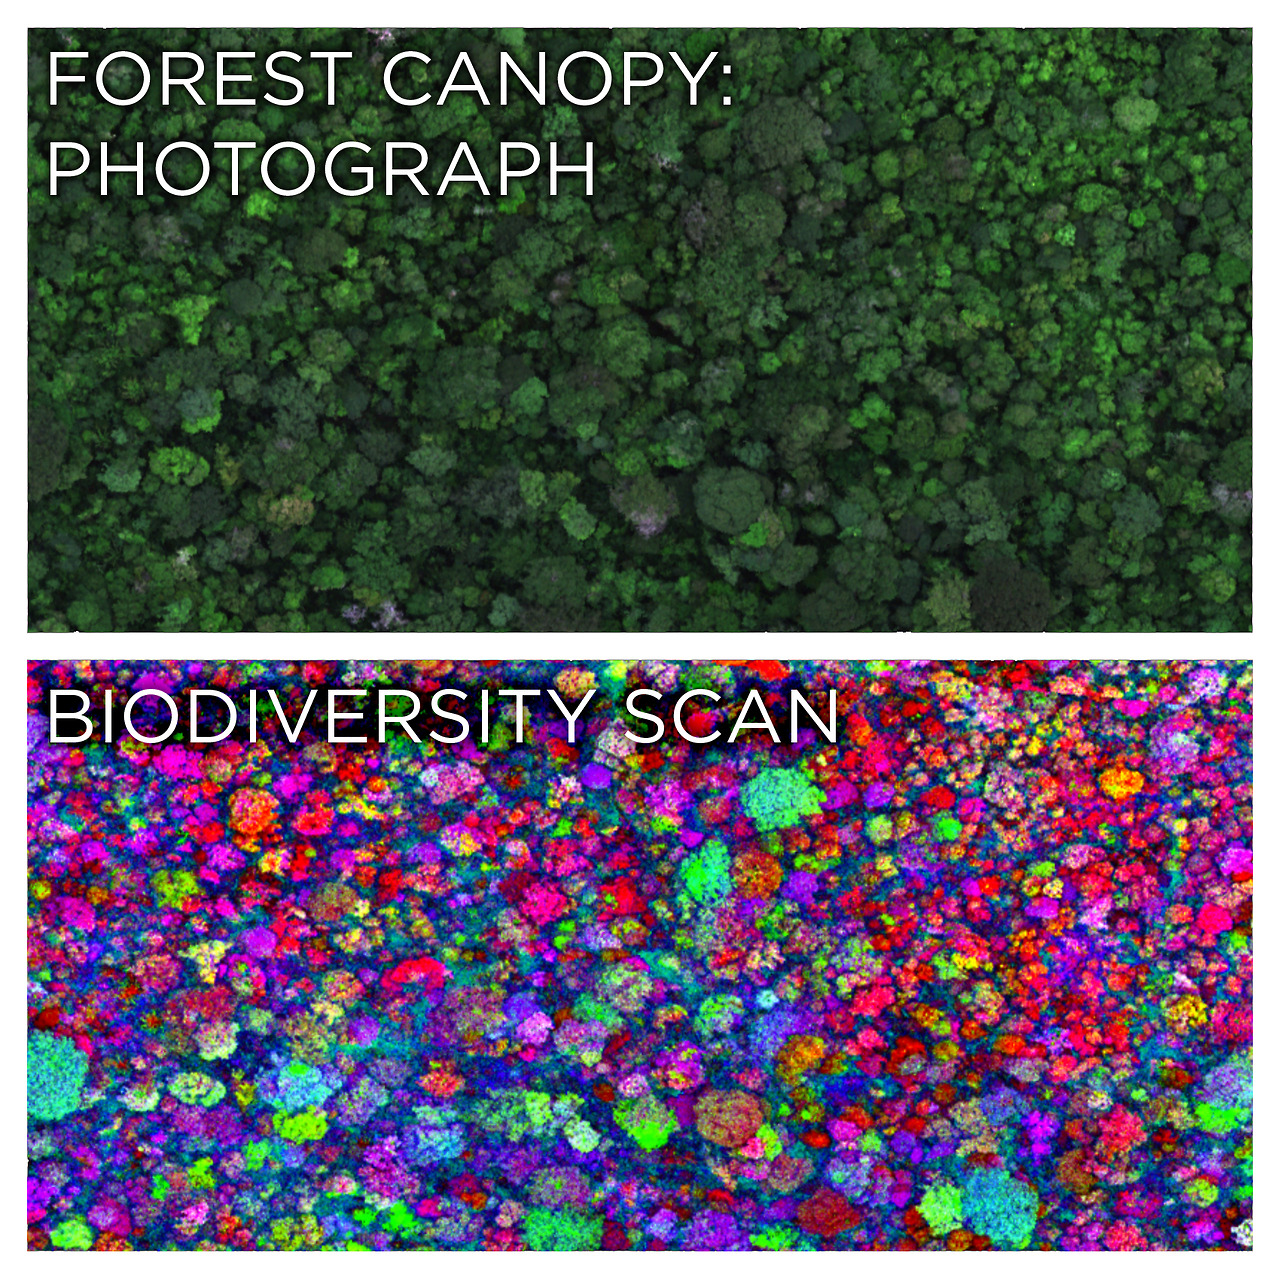 Above: a forest as we've all seen one. Below: the variety of species as denoted by color.